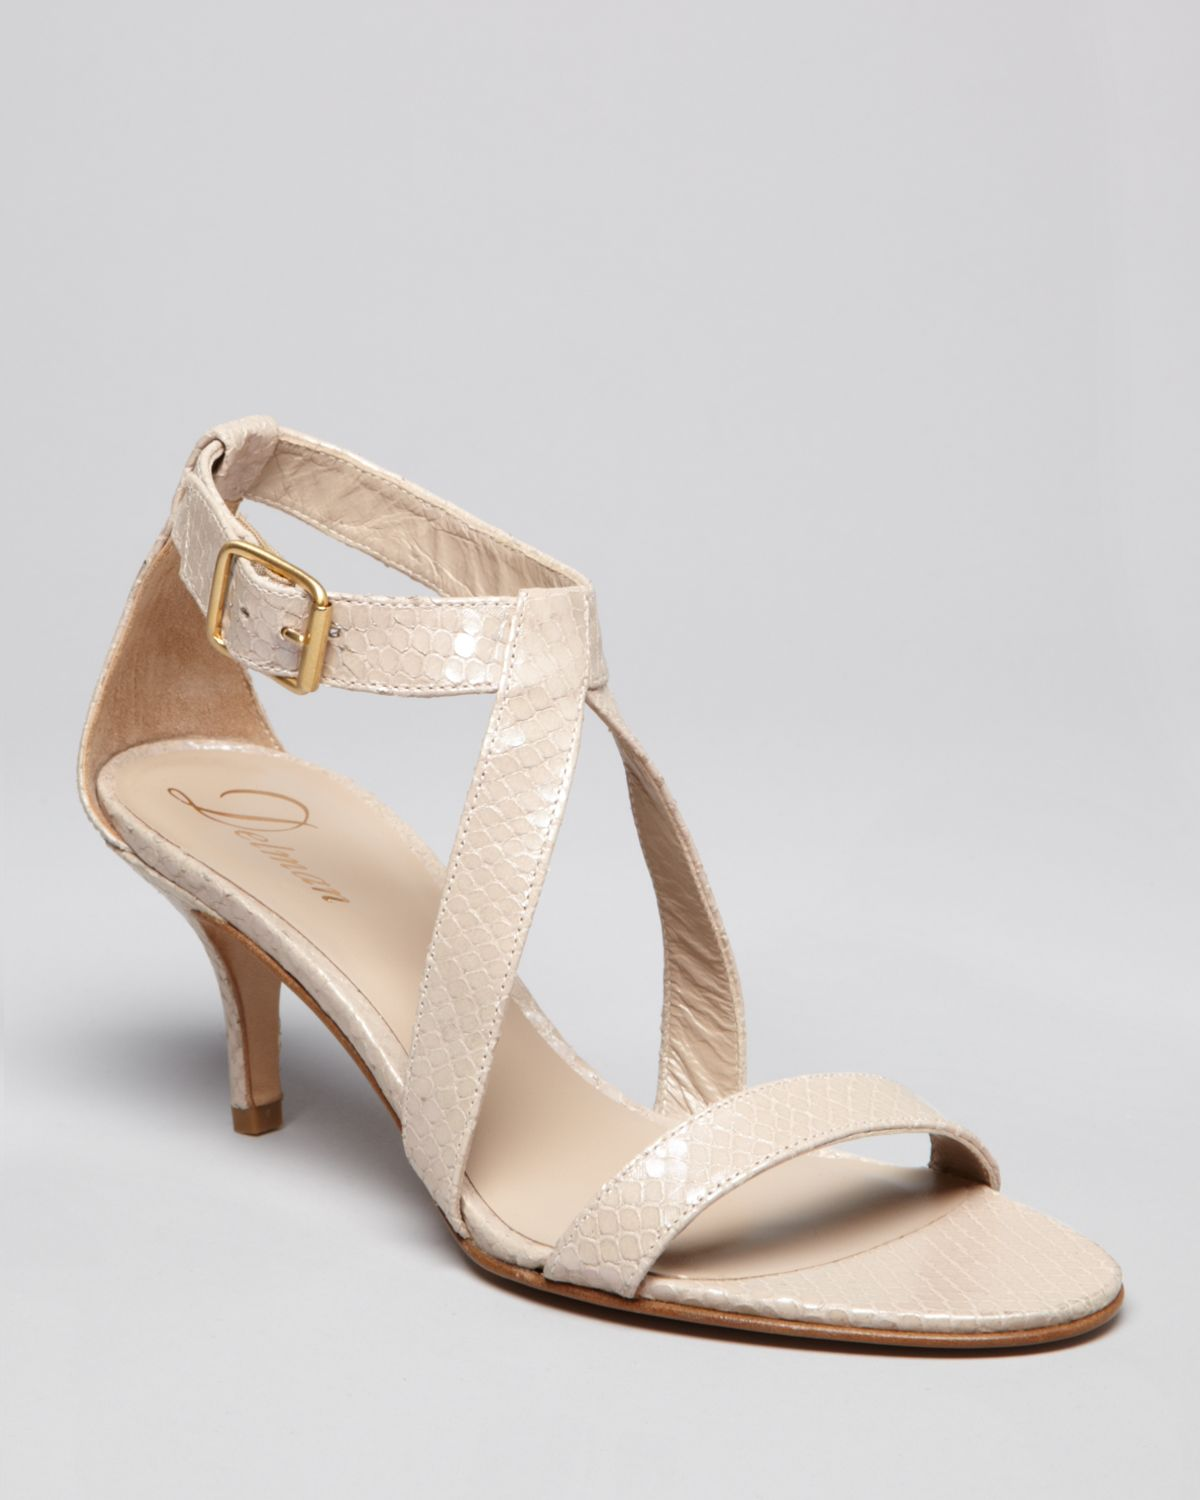 Low Heel Nude Sandals - Is Heel